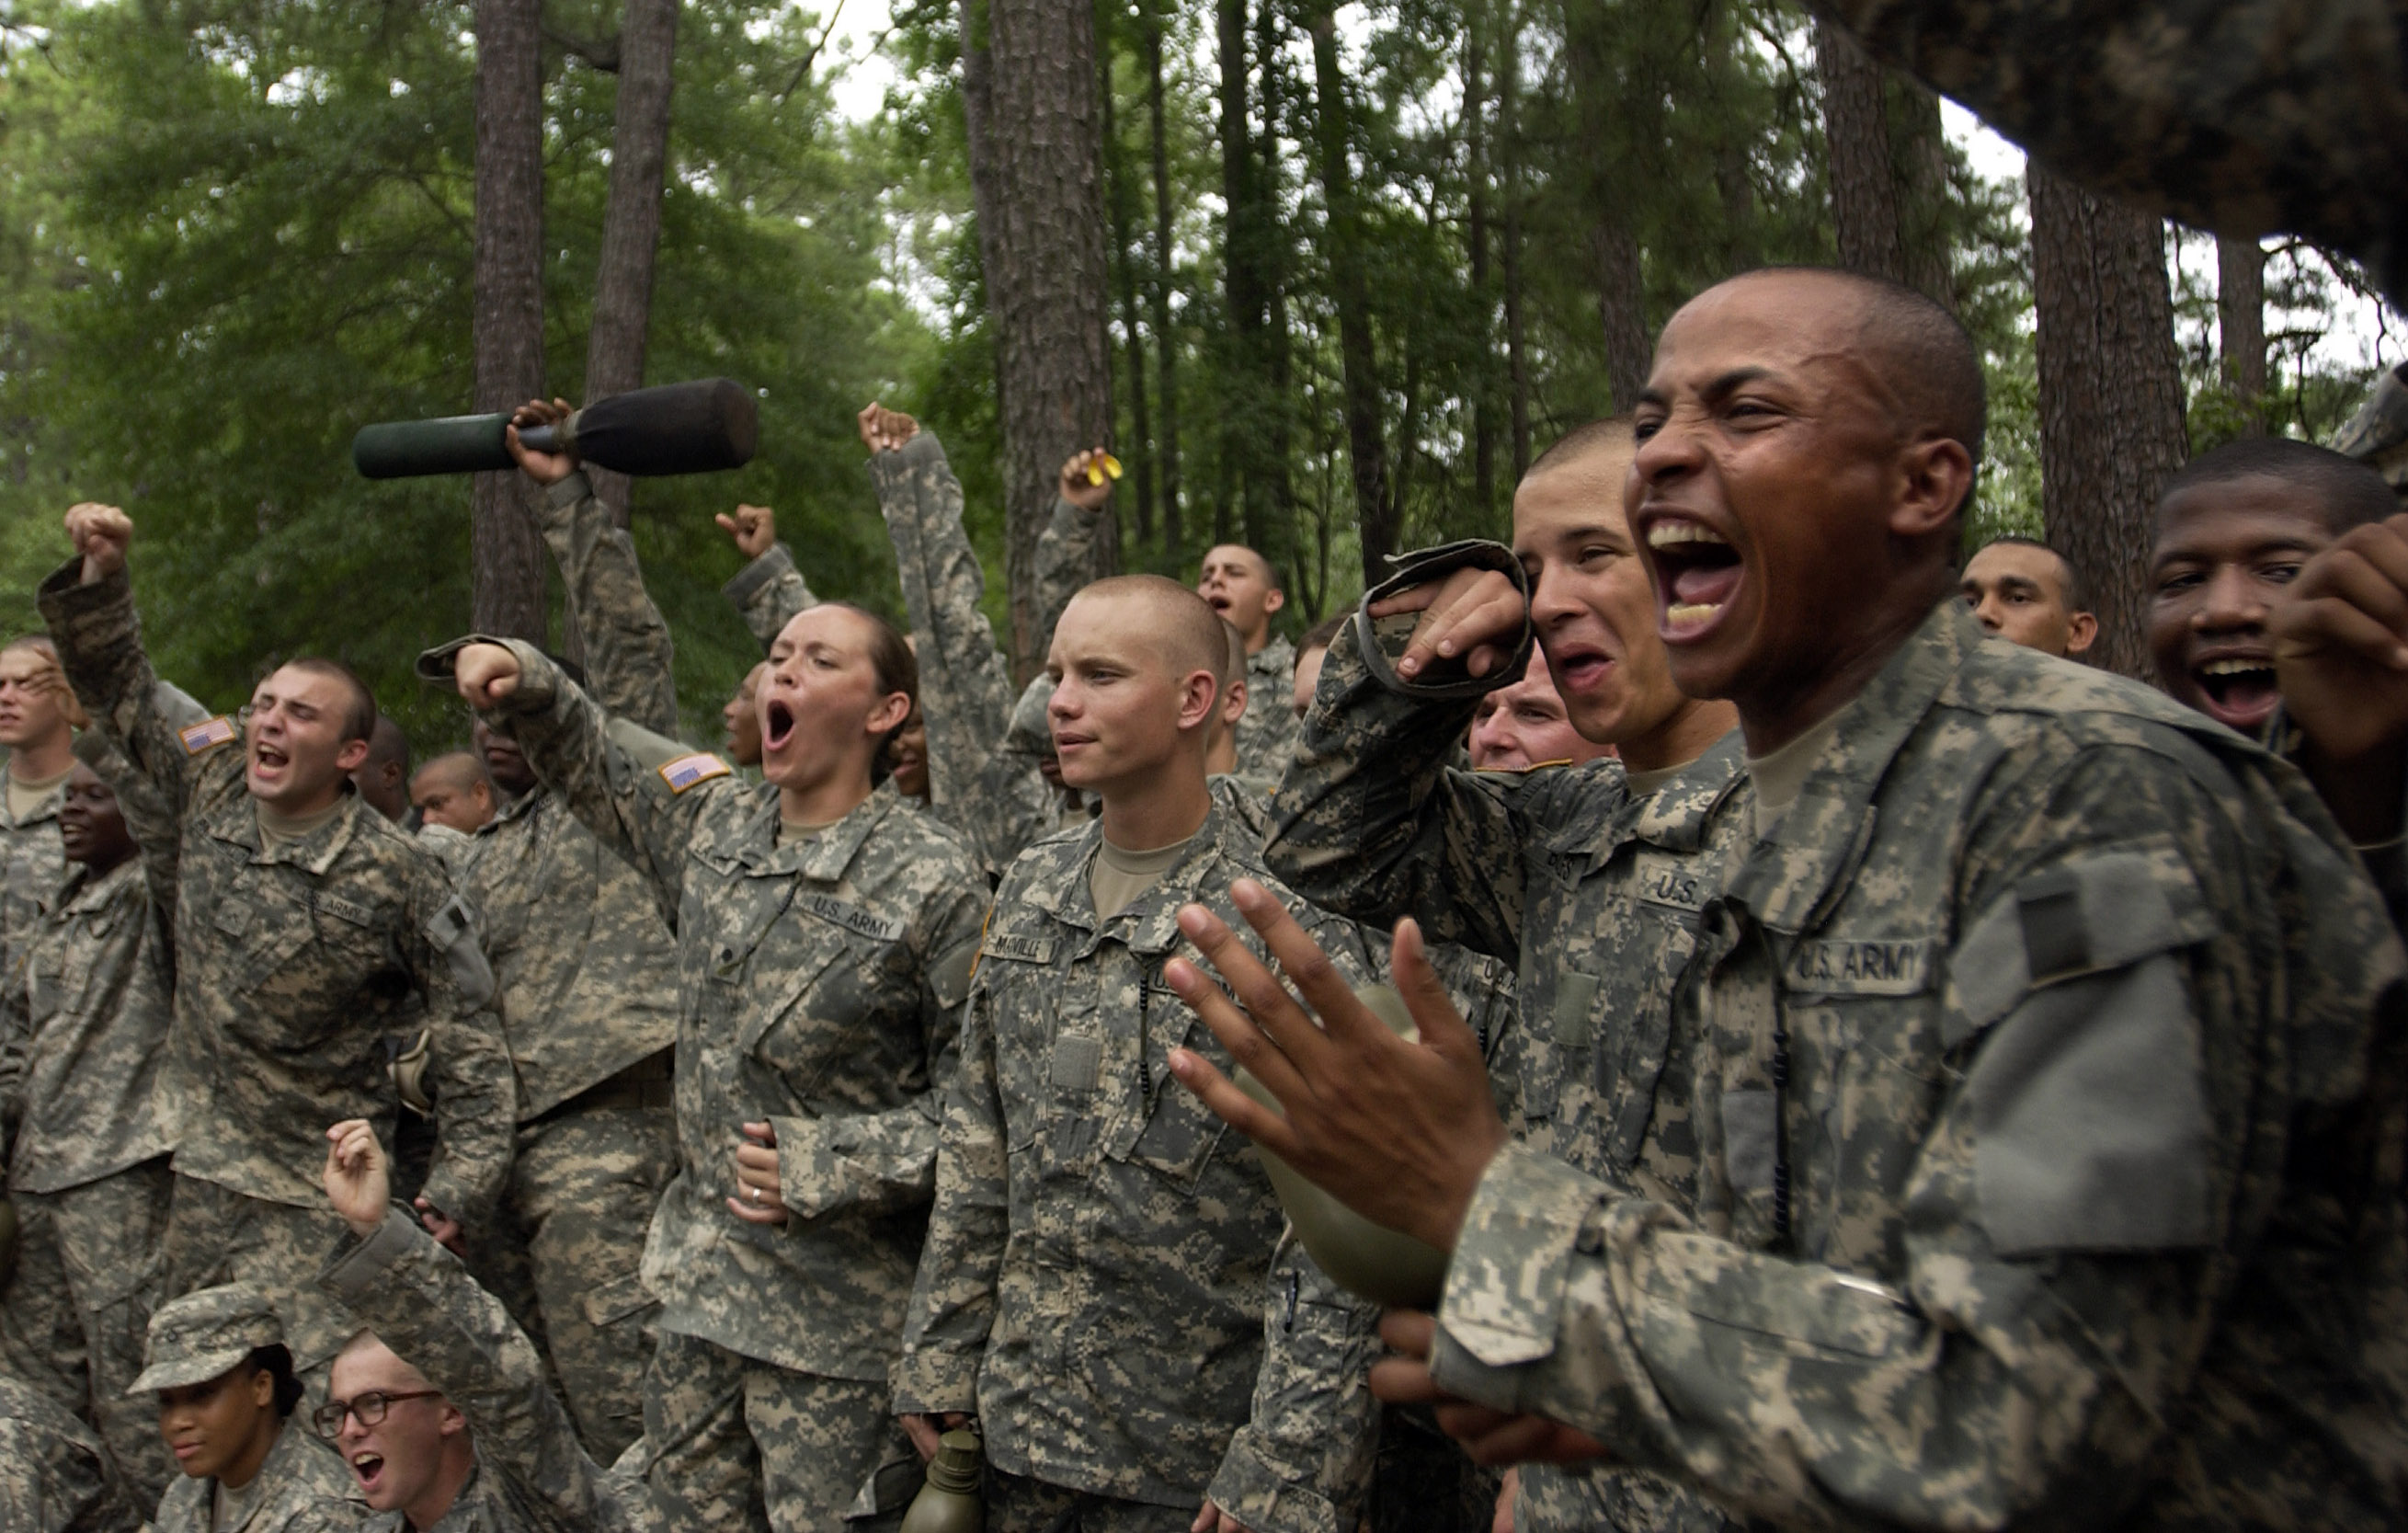 Army Basic Training And Ait Description For Resume